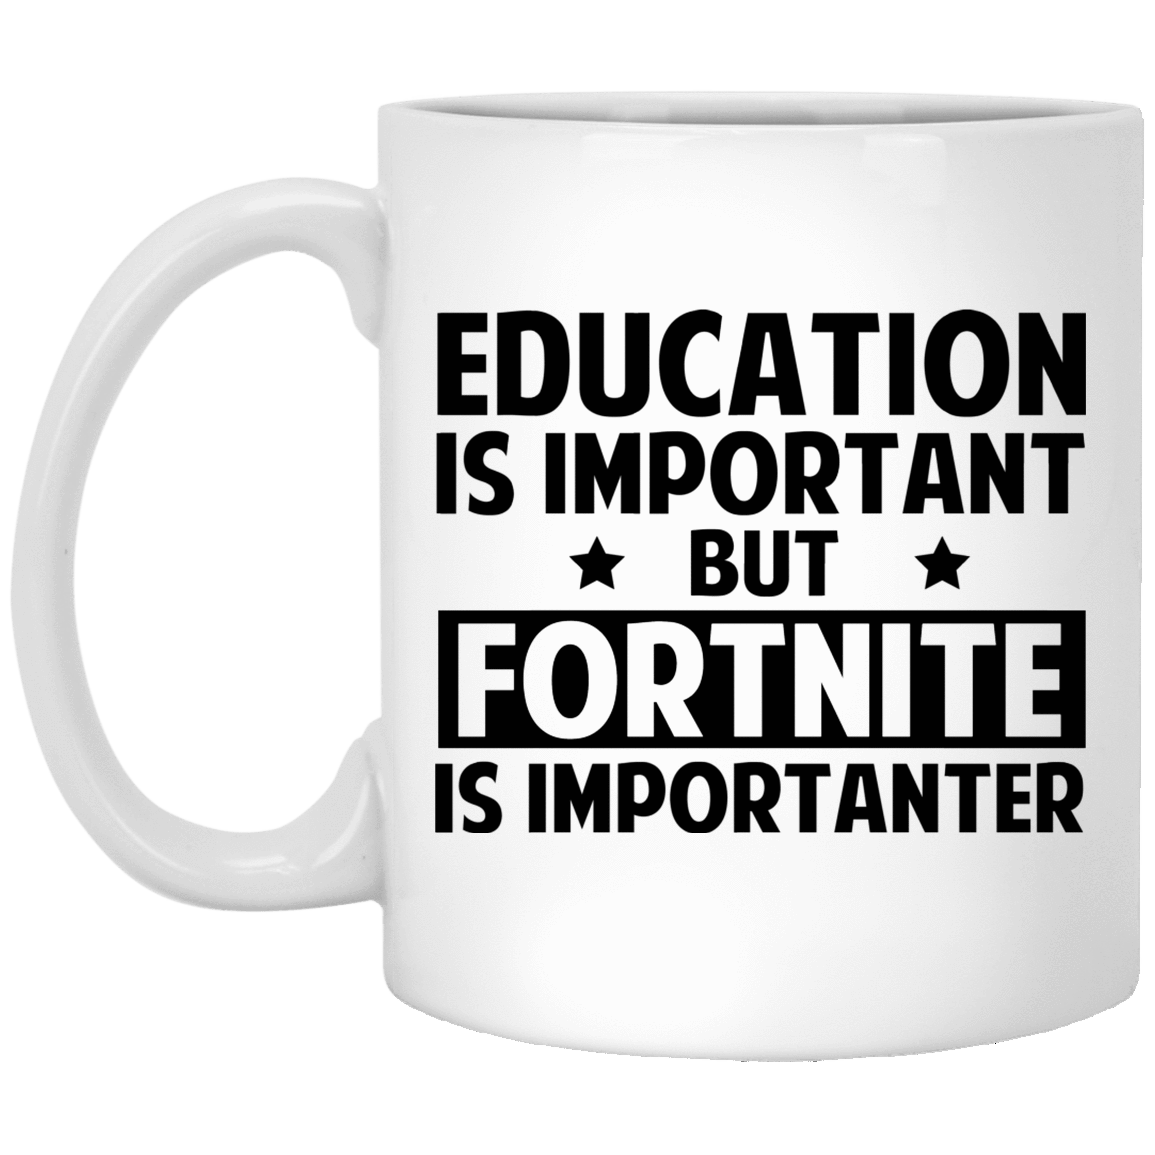 Education Is Important But Fortnite Is Importanter Mug 1005-9786-73514783-47417 - Tee Ript